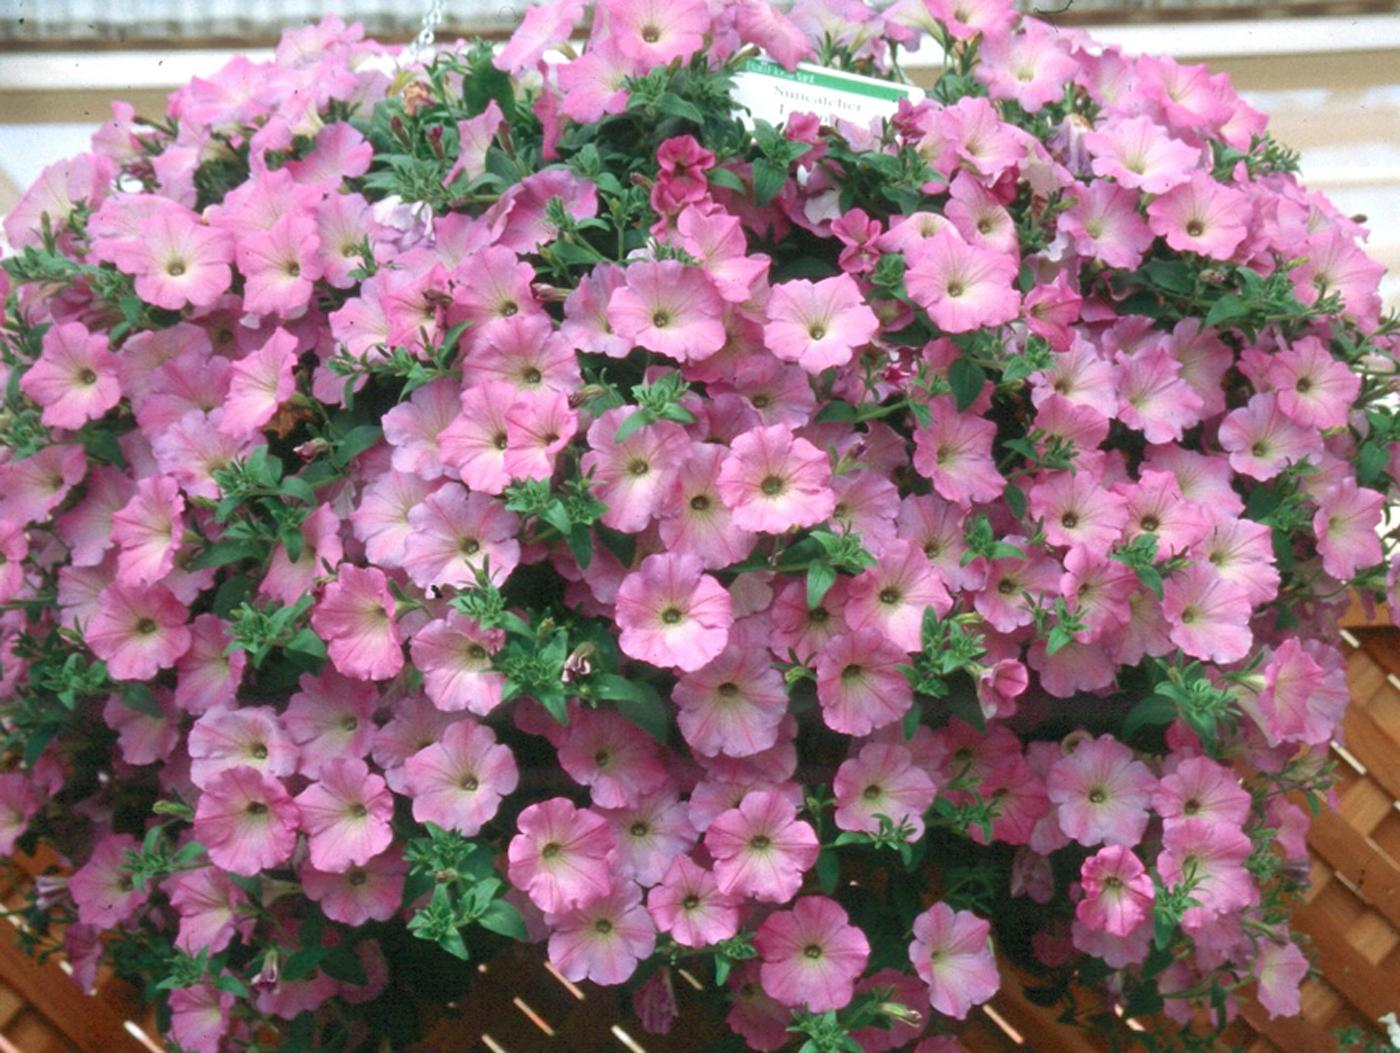 Ball Flora Plant, a division of Ball Seed, is introducing the Suncatcher series of petunias . These are large showy petunias that bring a bright, colorful impact to the garden or basket.